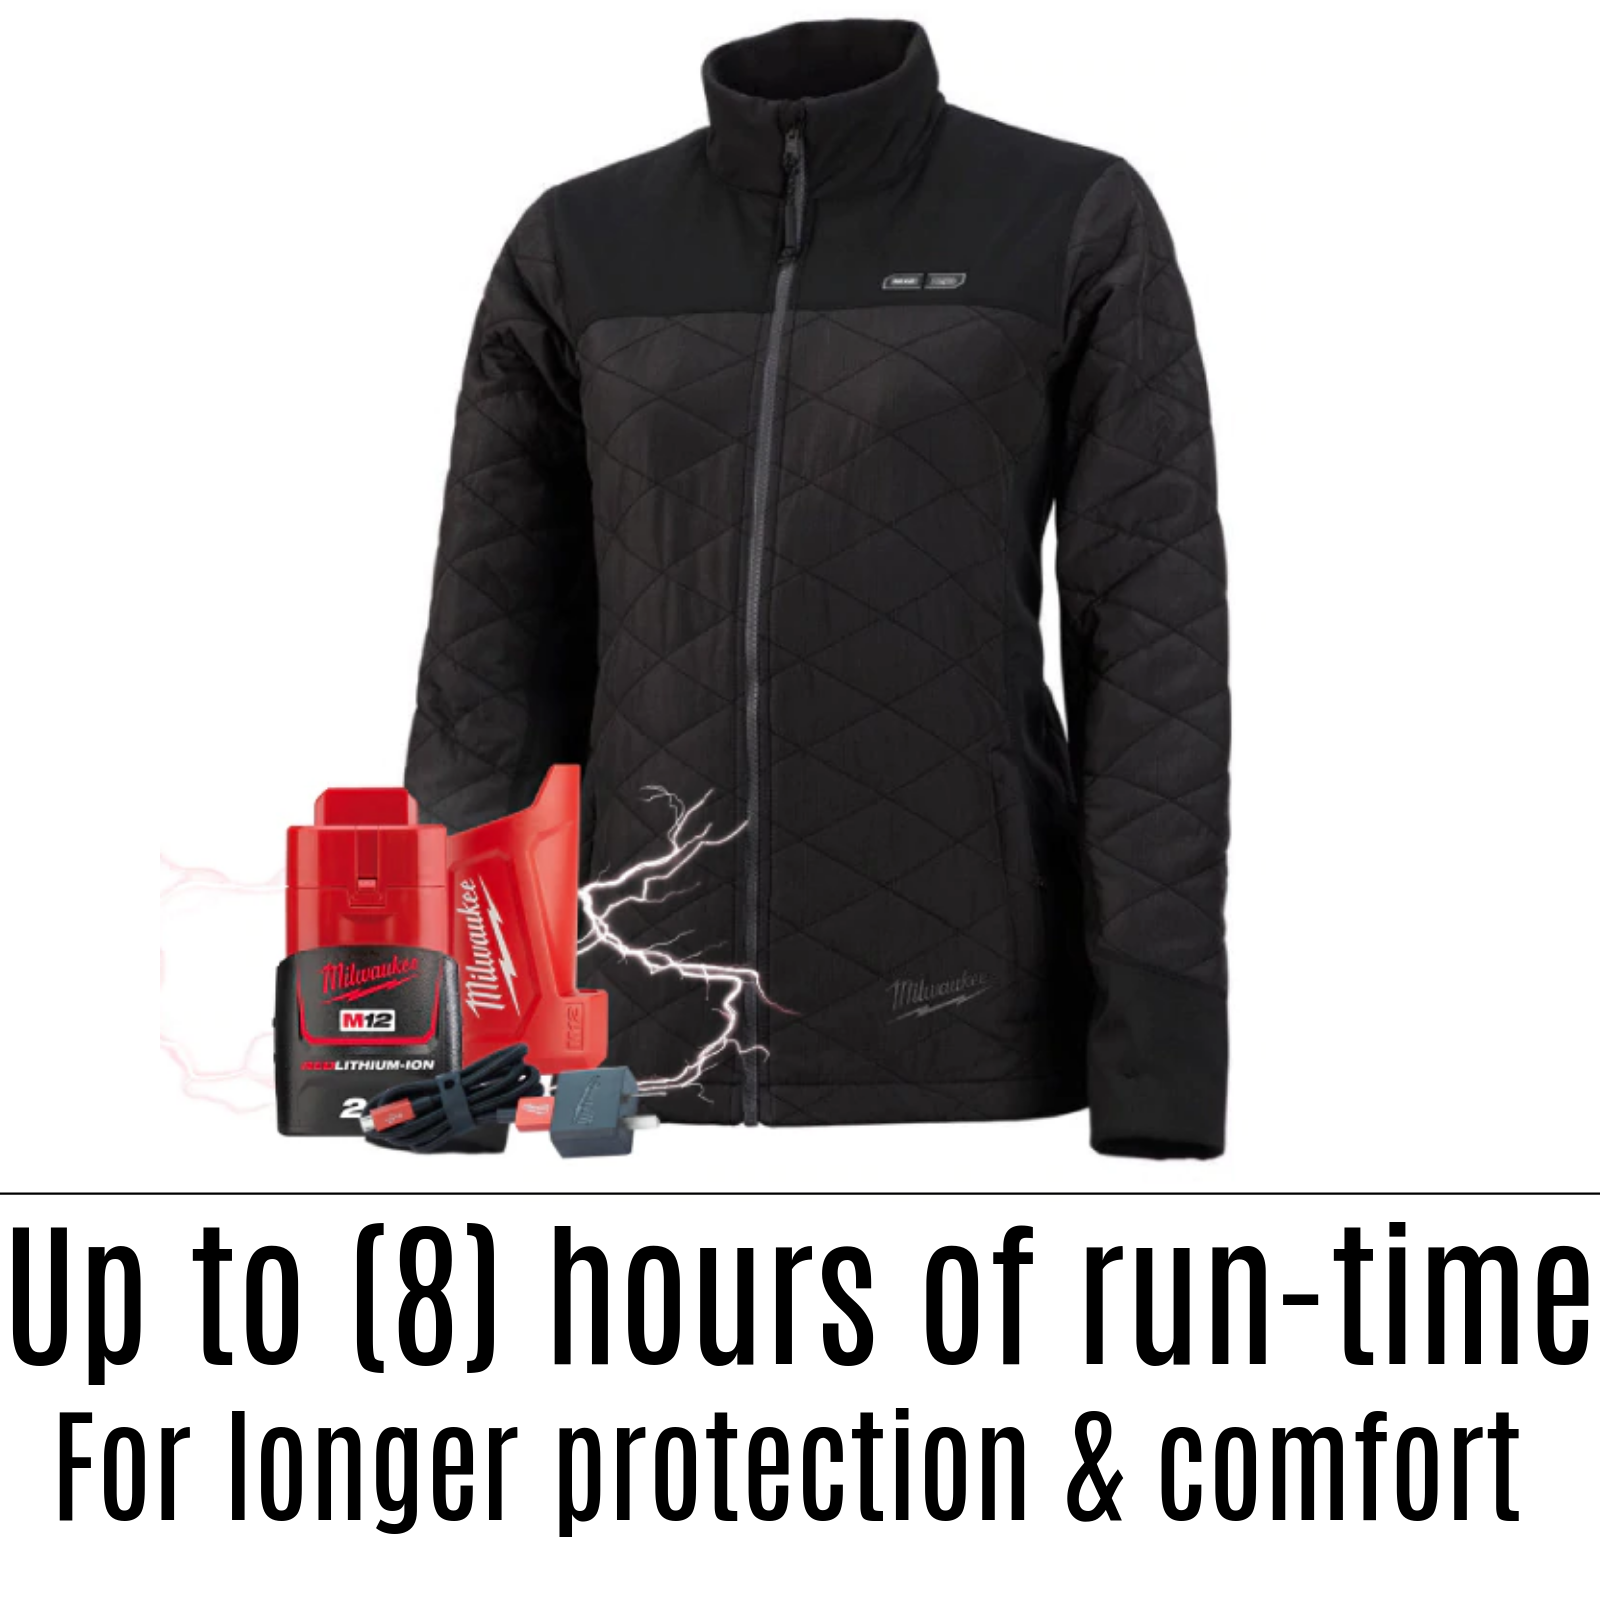 Details about MILWAUKEE WOMEN'S HEATED JACKET KIT INCLUDES BATTERY &  CHARGER LADIES ELECTRIC